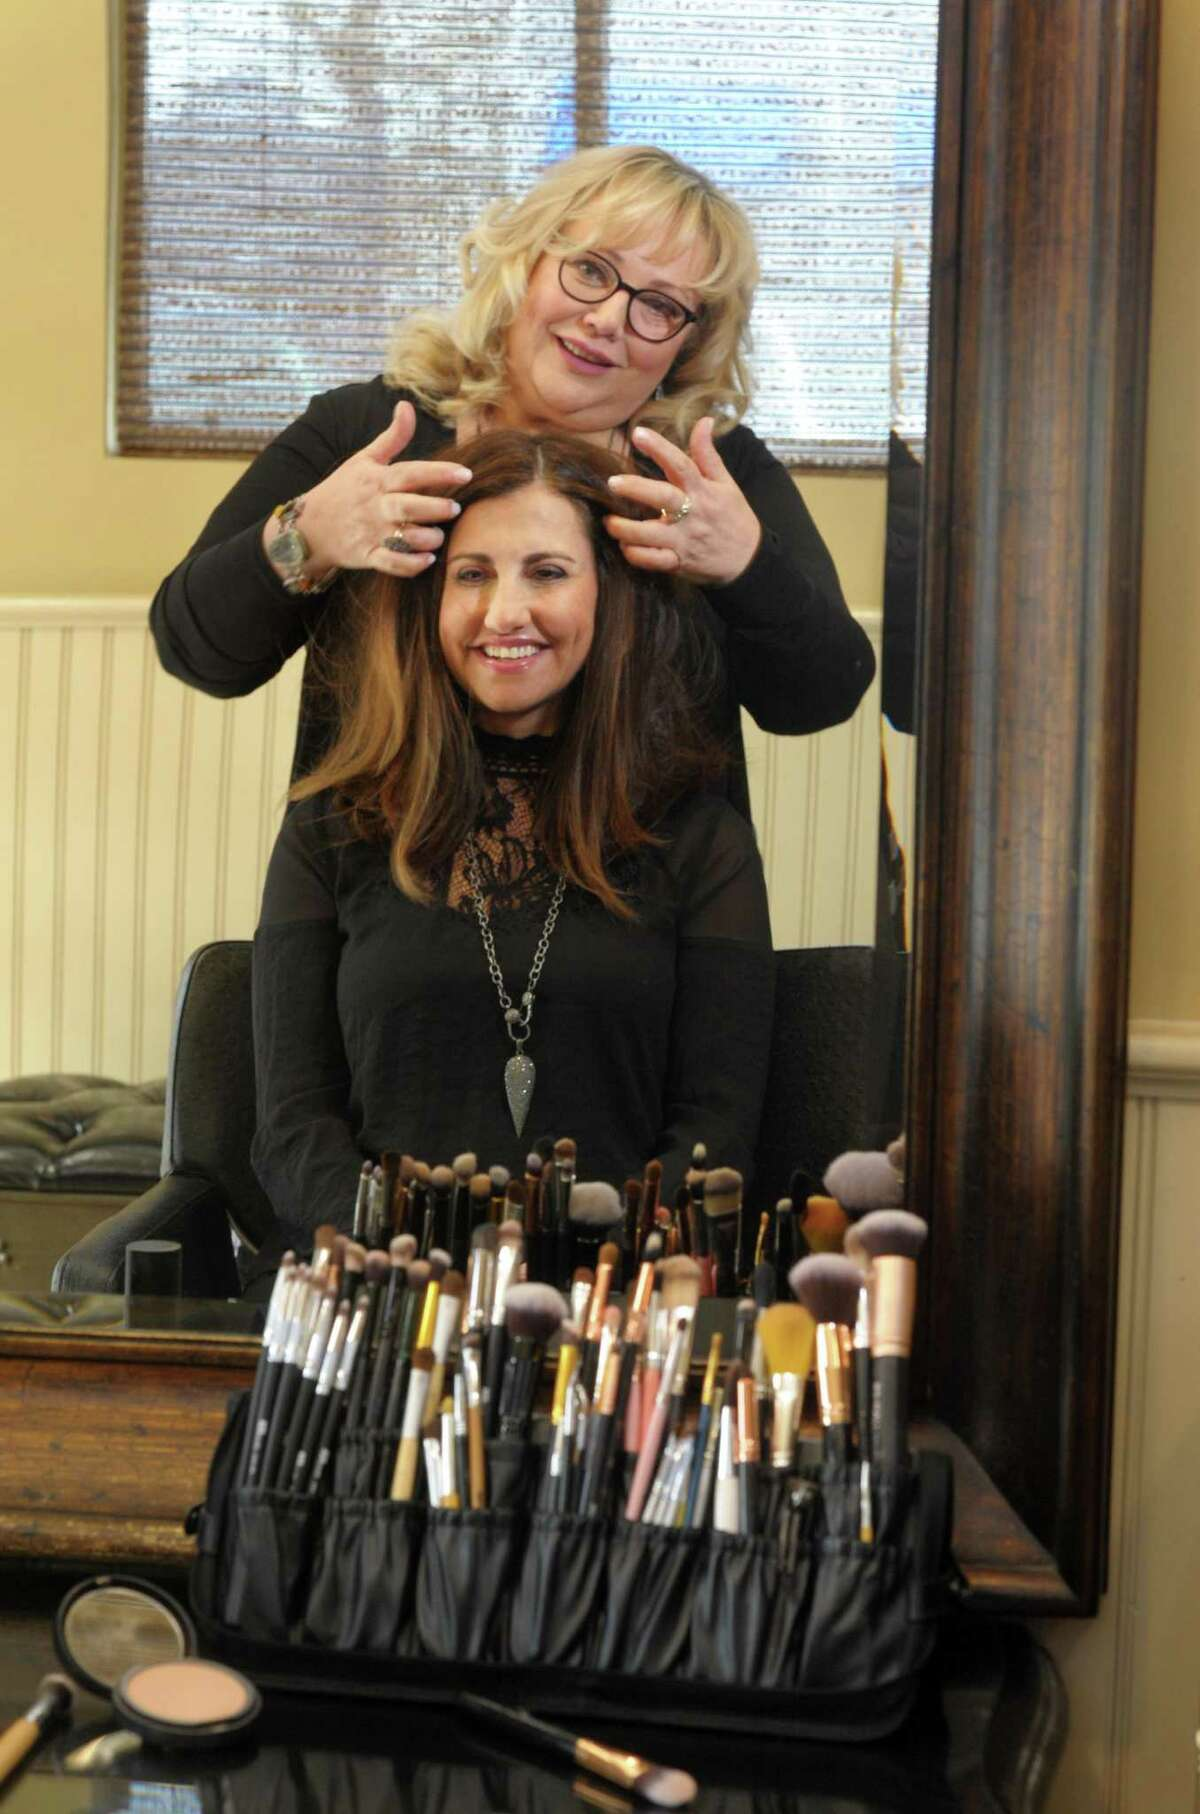 When she's not doing hair and makeup for pro wrestlers and other celebrities, Janet Ventriglia is a stylist at H Salon in Fairfield.